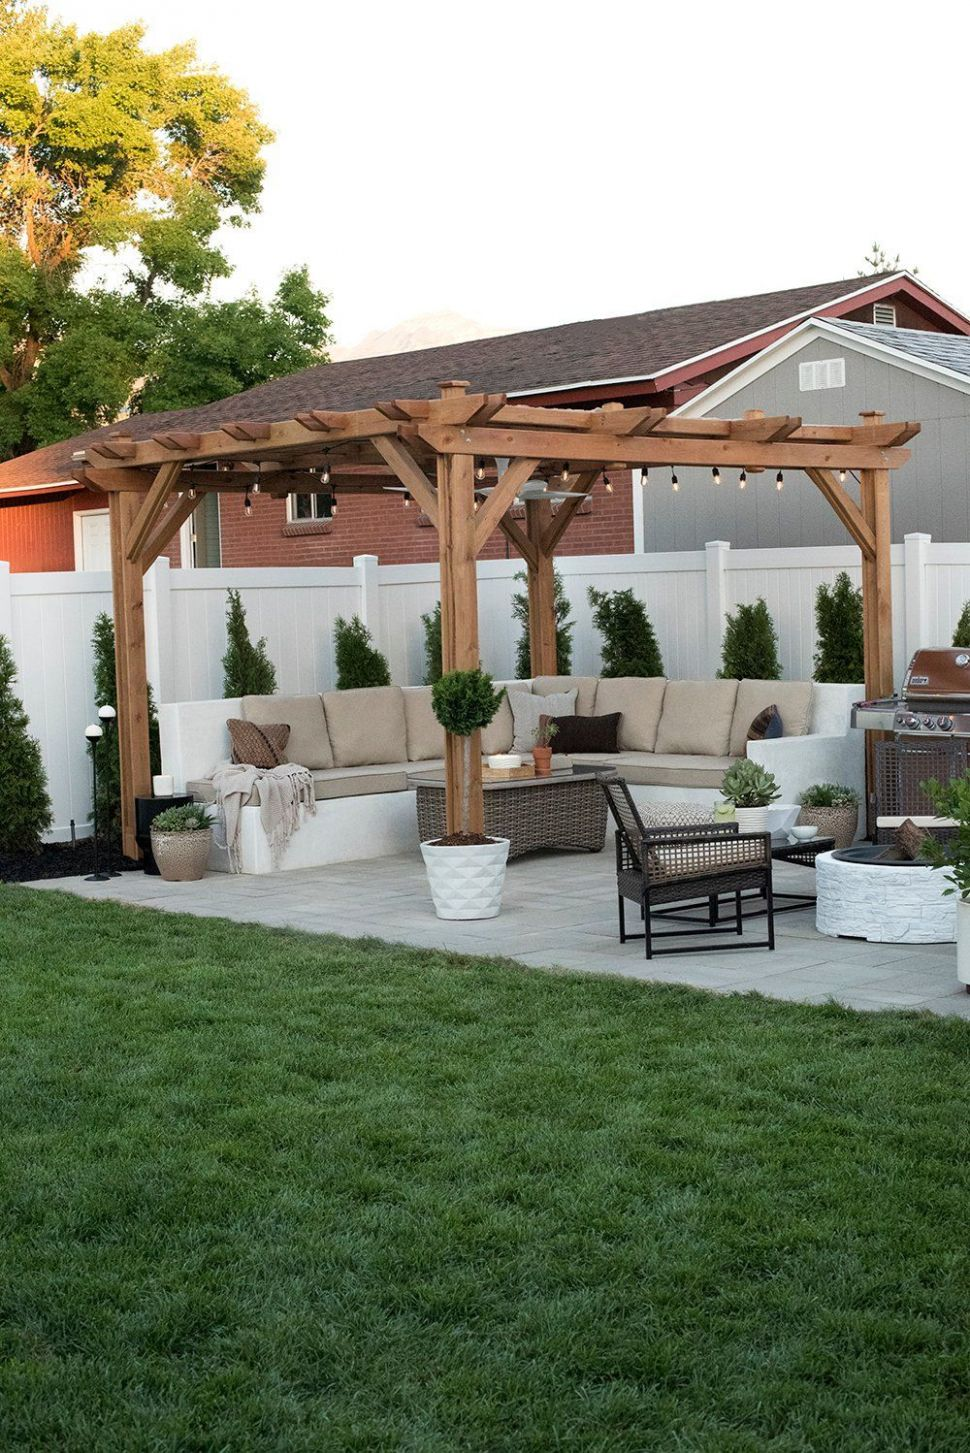 Our Backyard Reveal & Get the Look | Small backyard patio ..